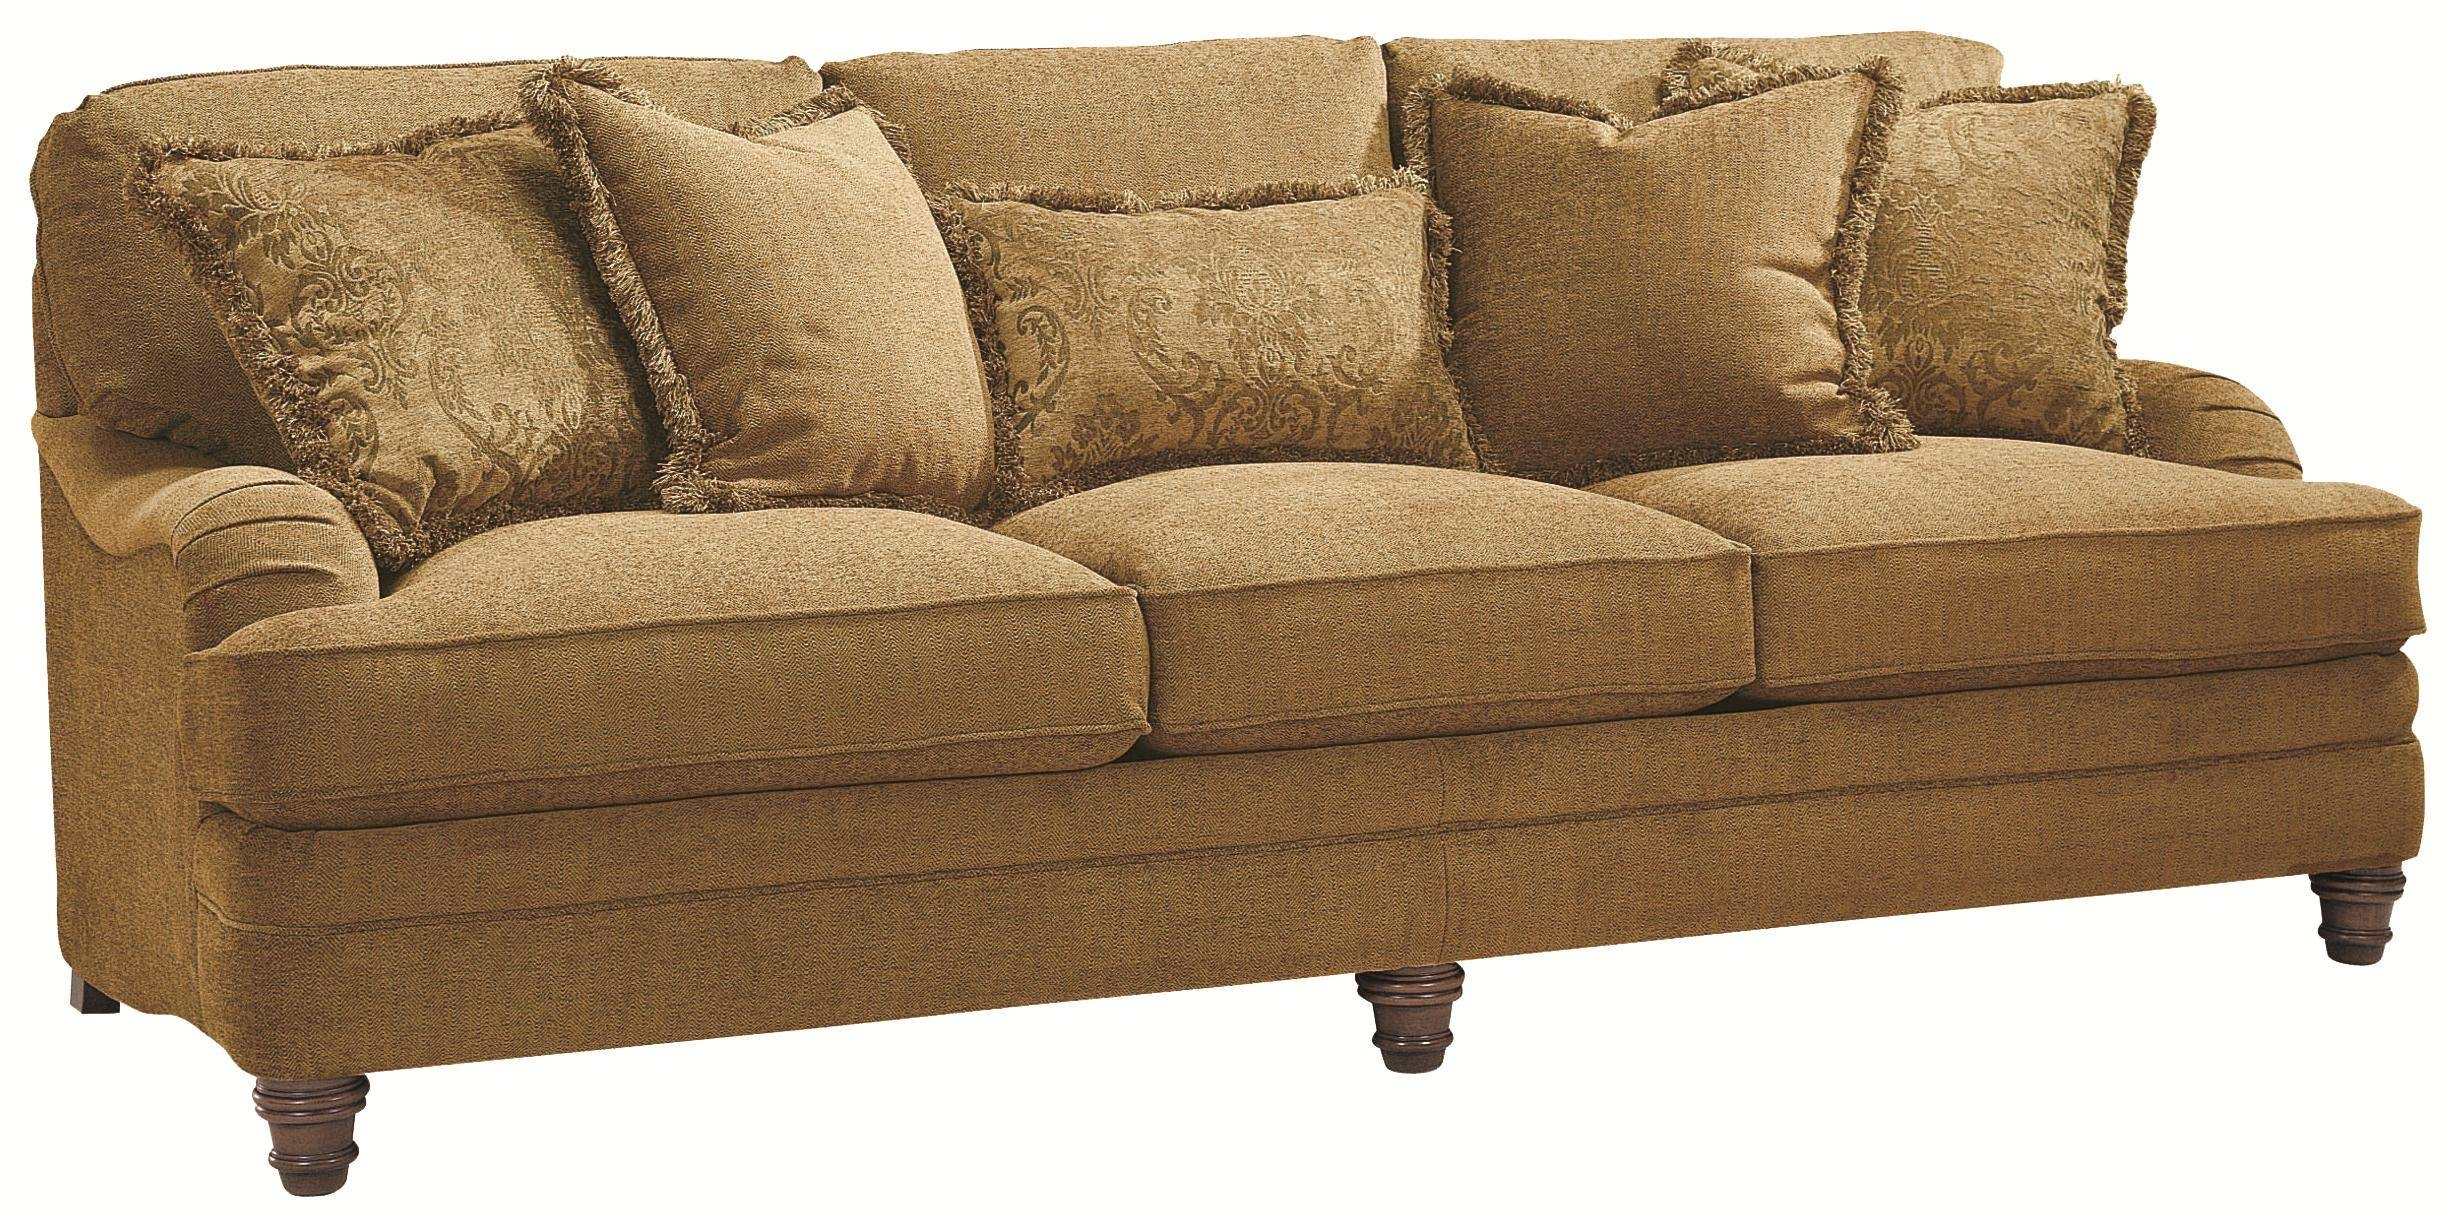 Bernhardt Furniture Reviews Sofa | Centerfieldbar inside Bernhardt Brae Sofas (Image 8 of 15)